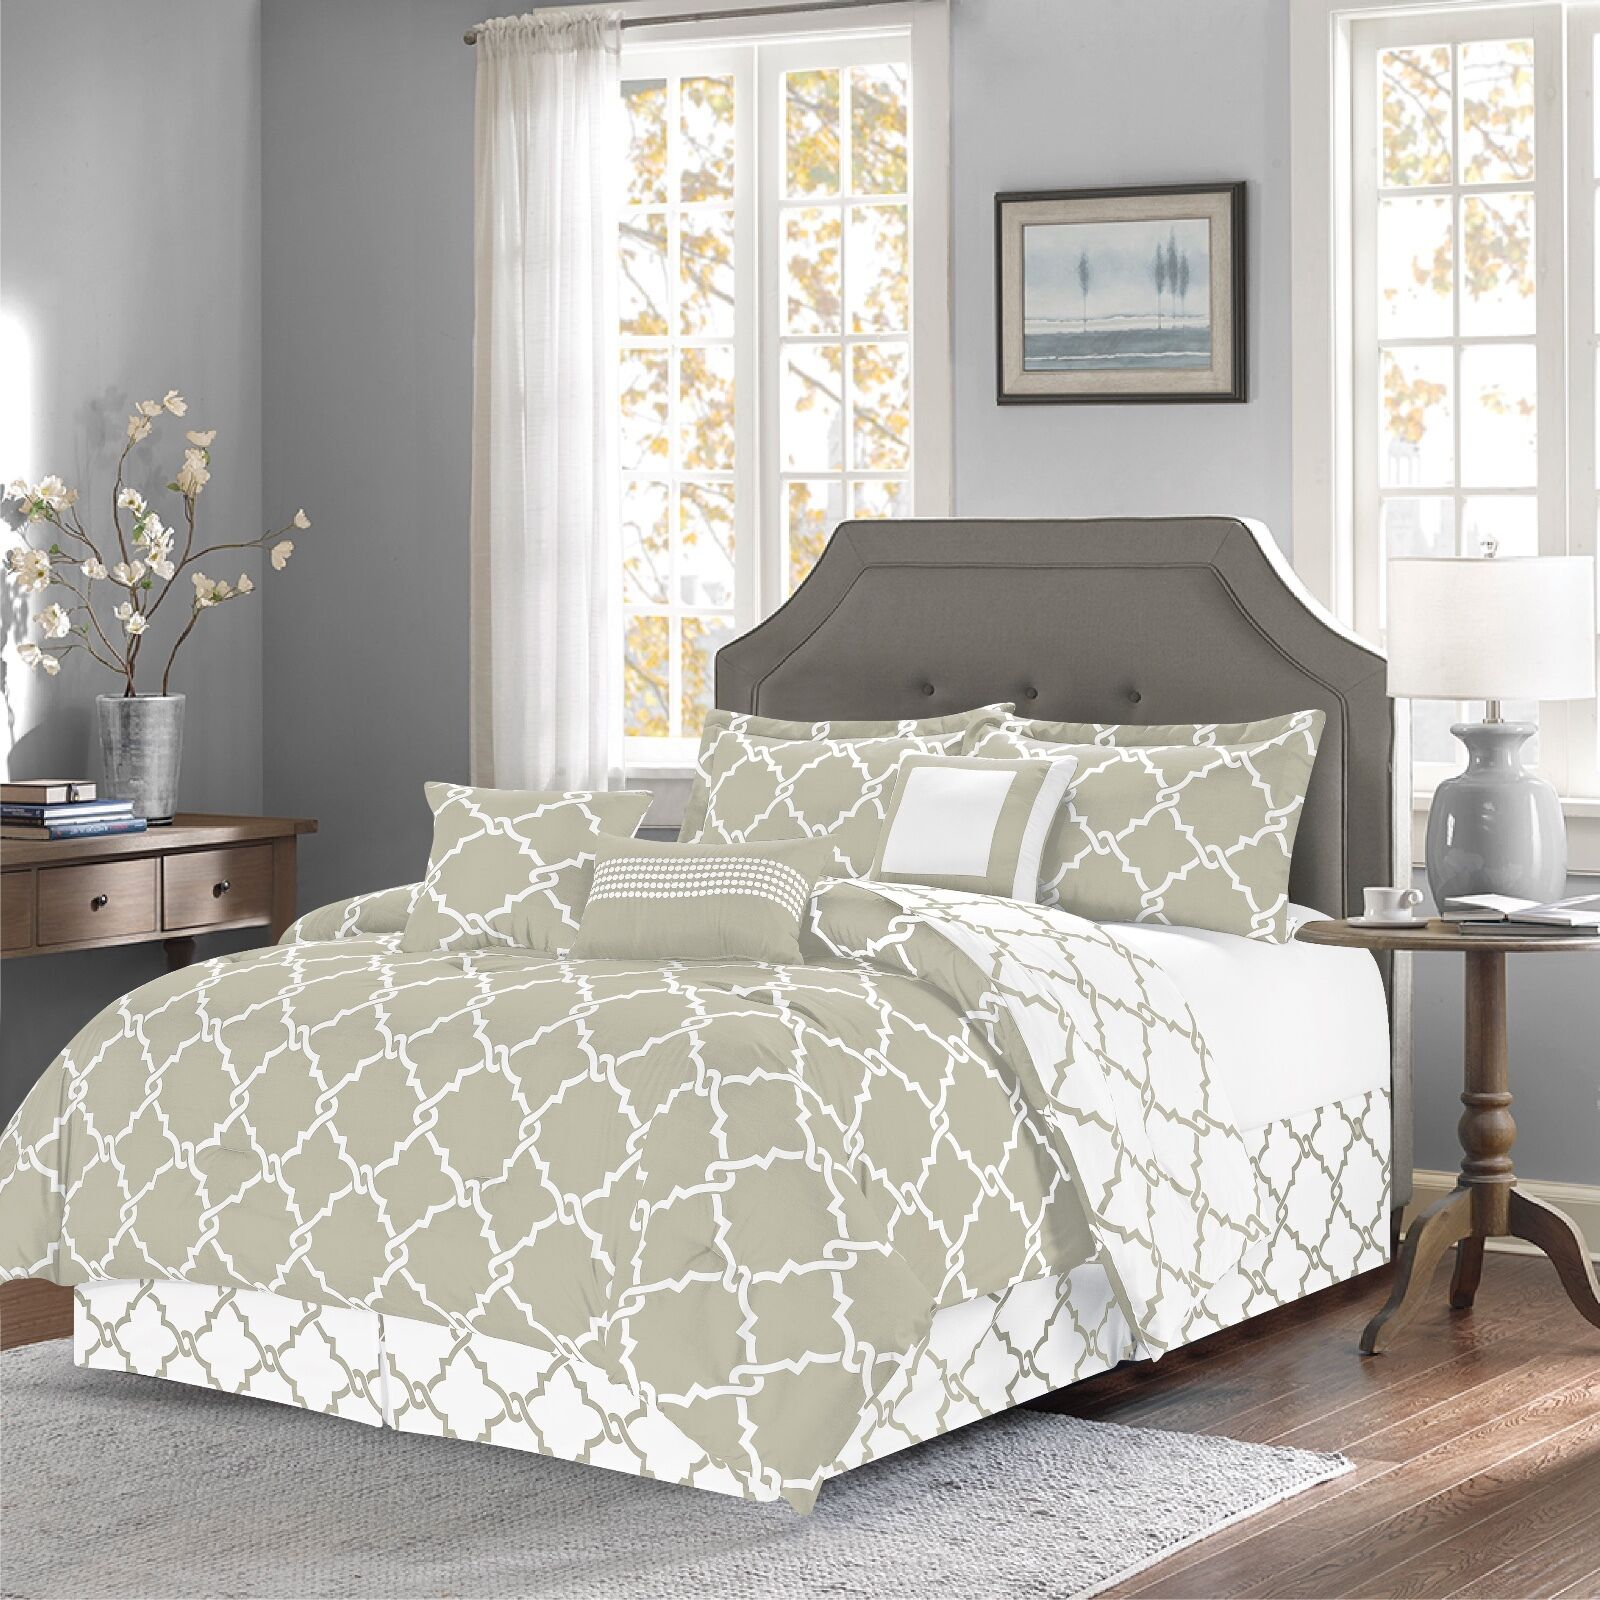 7-Piece Reversible Geometric Galaxy Comforter Set OverGrößed All Größes - Taupe